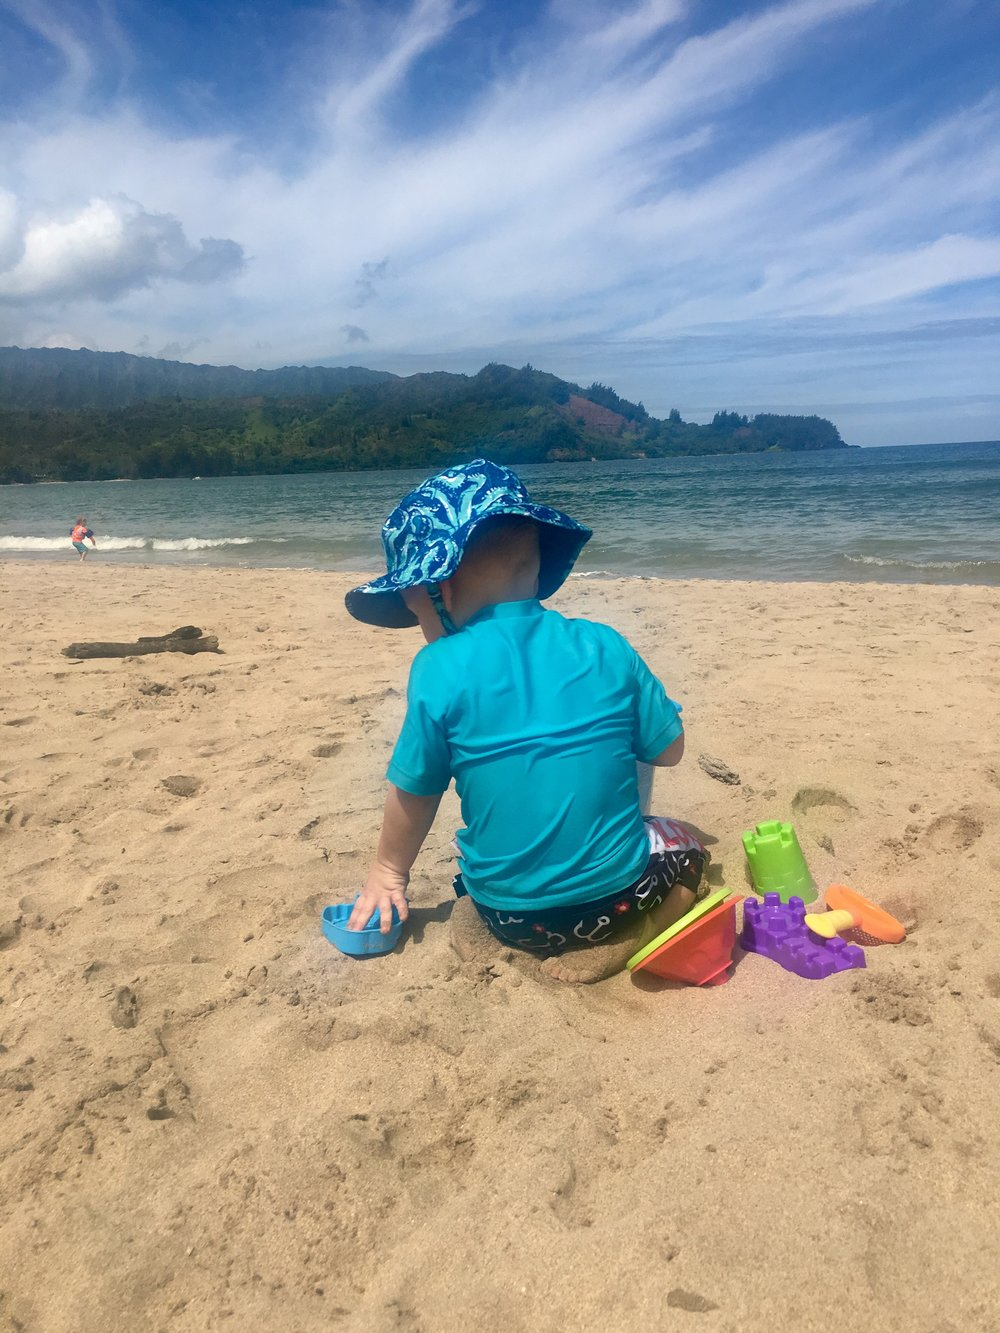 Fun in the Sand at Hanalei Beach